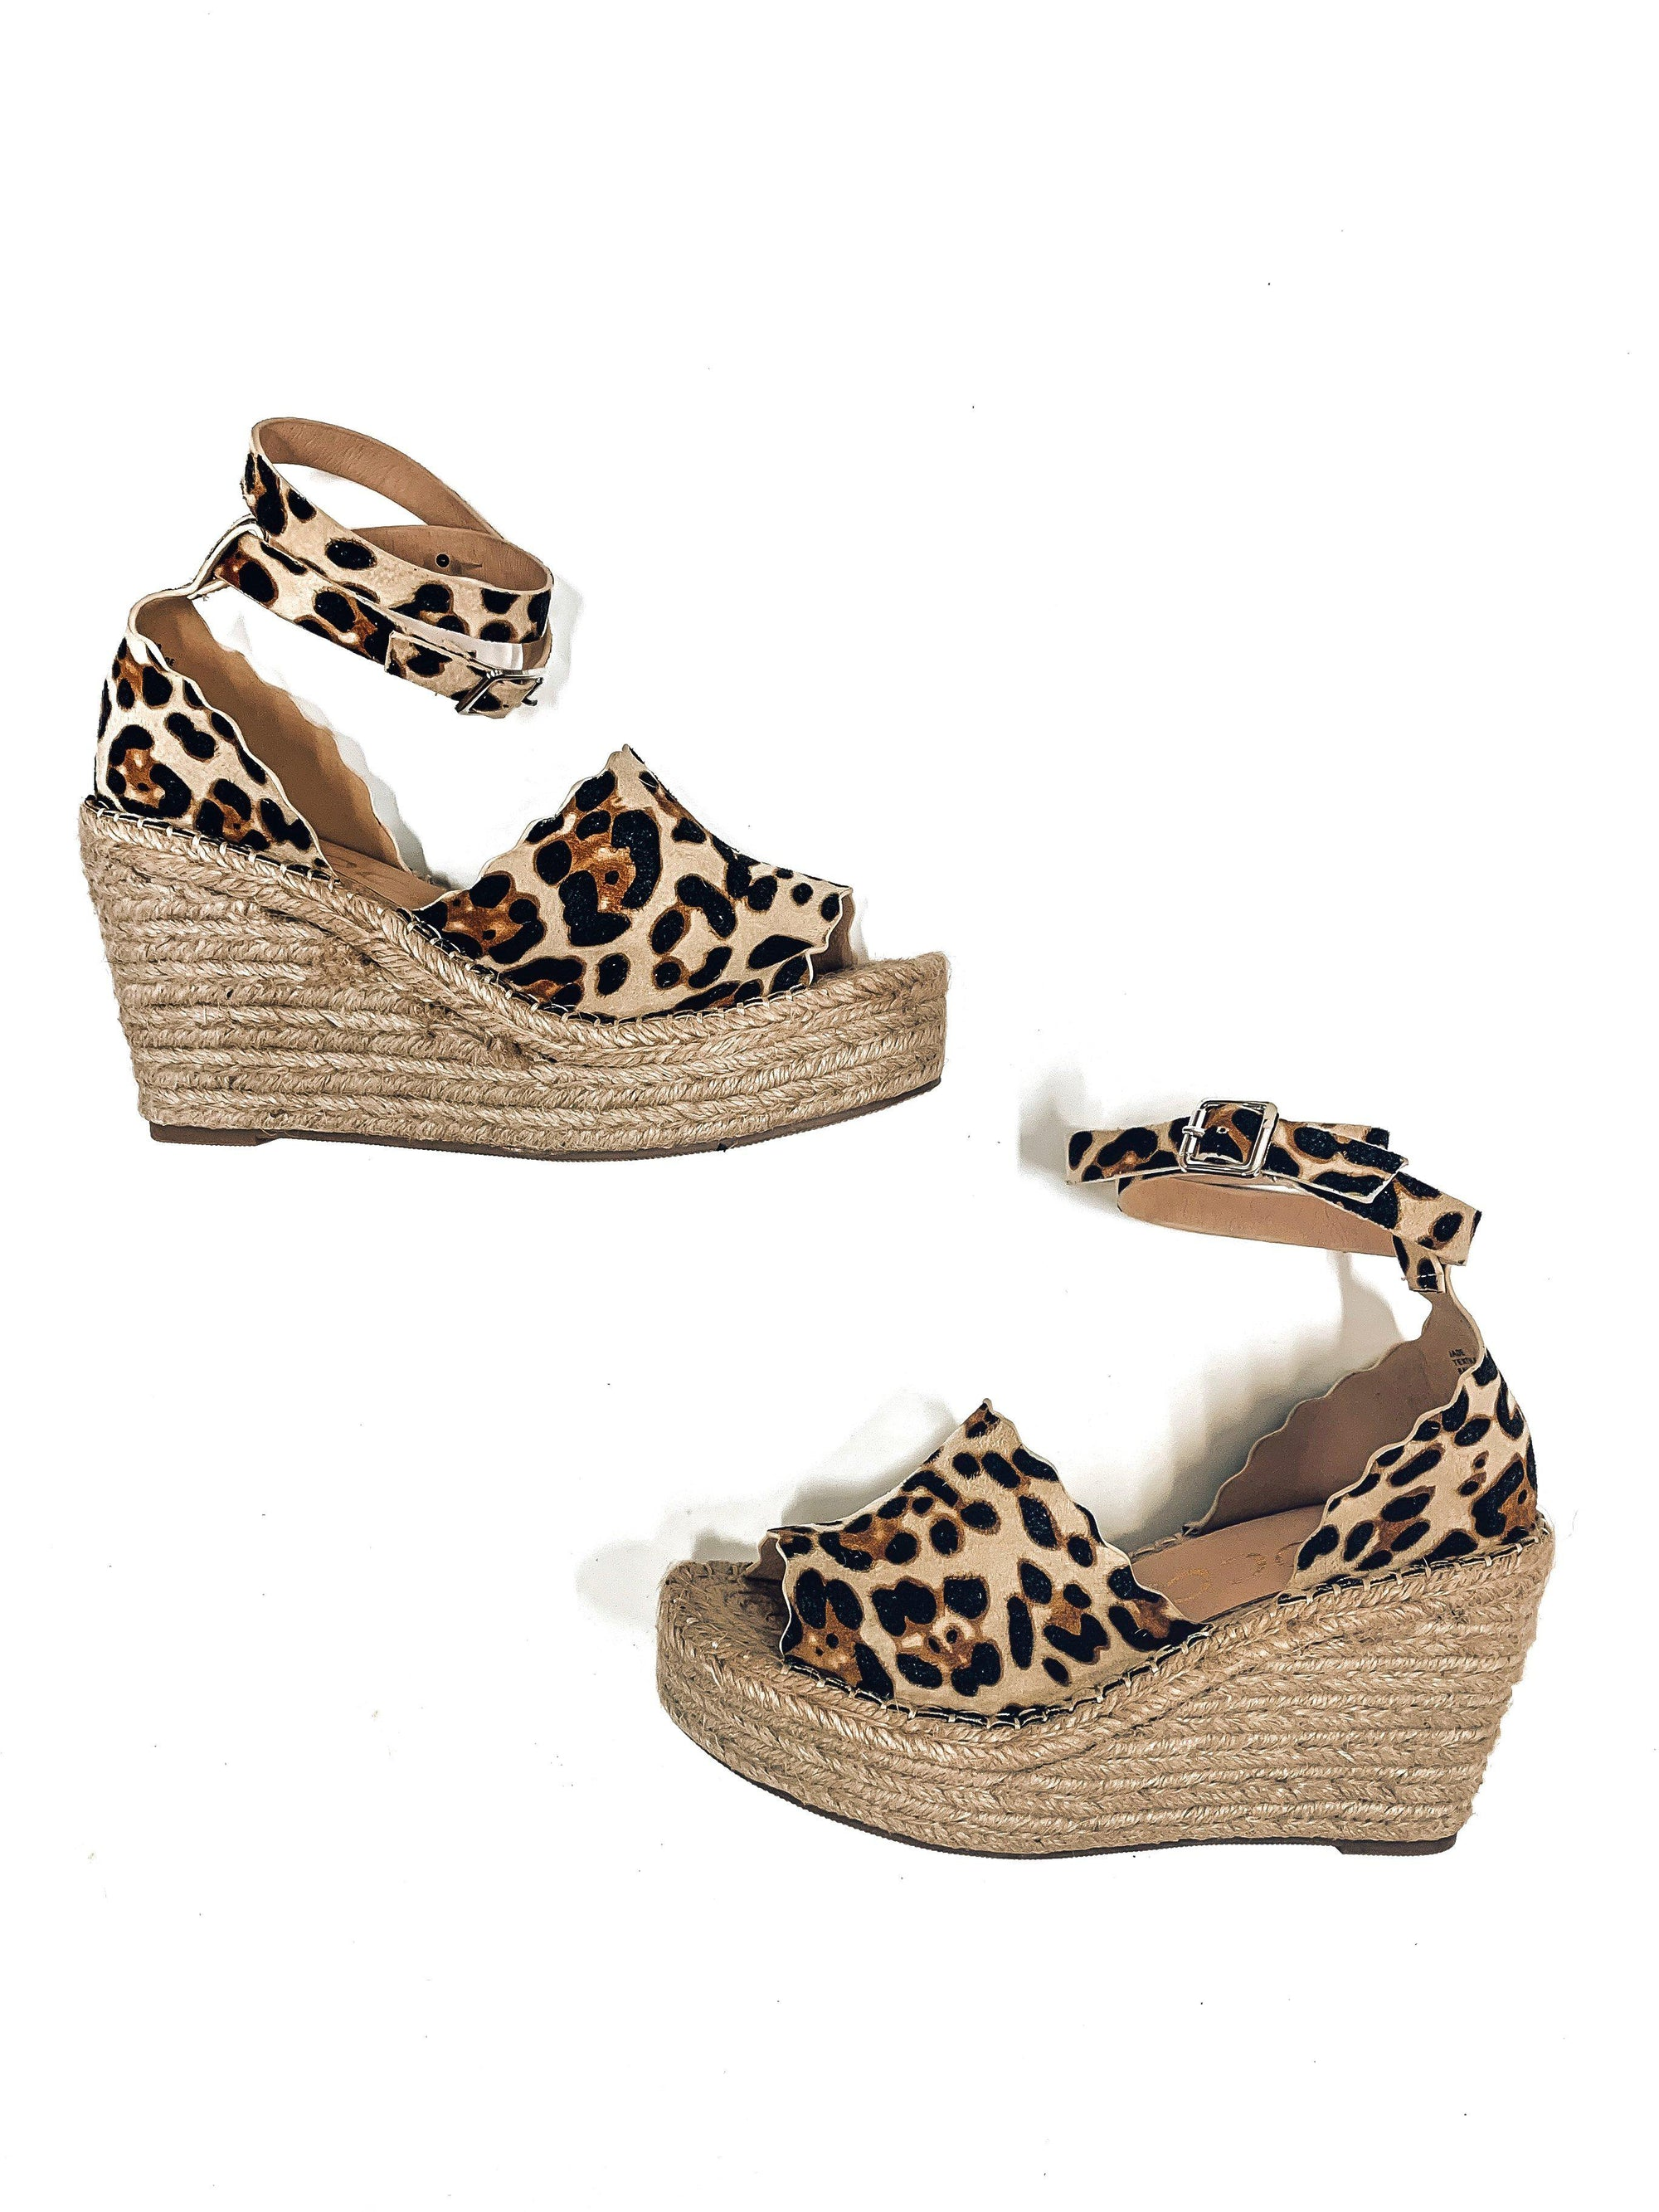 The Raye-Women's SHOES-New Arrivals-Runway Seven